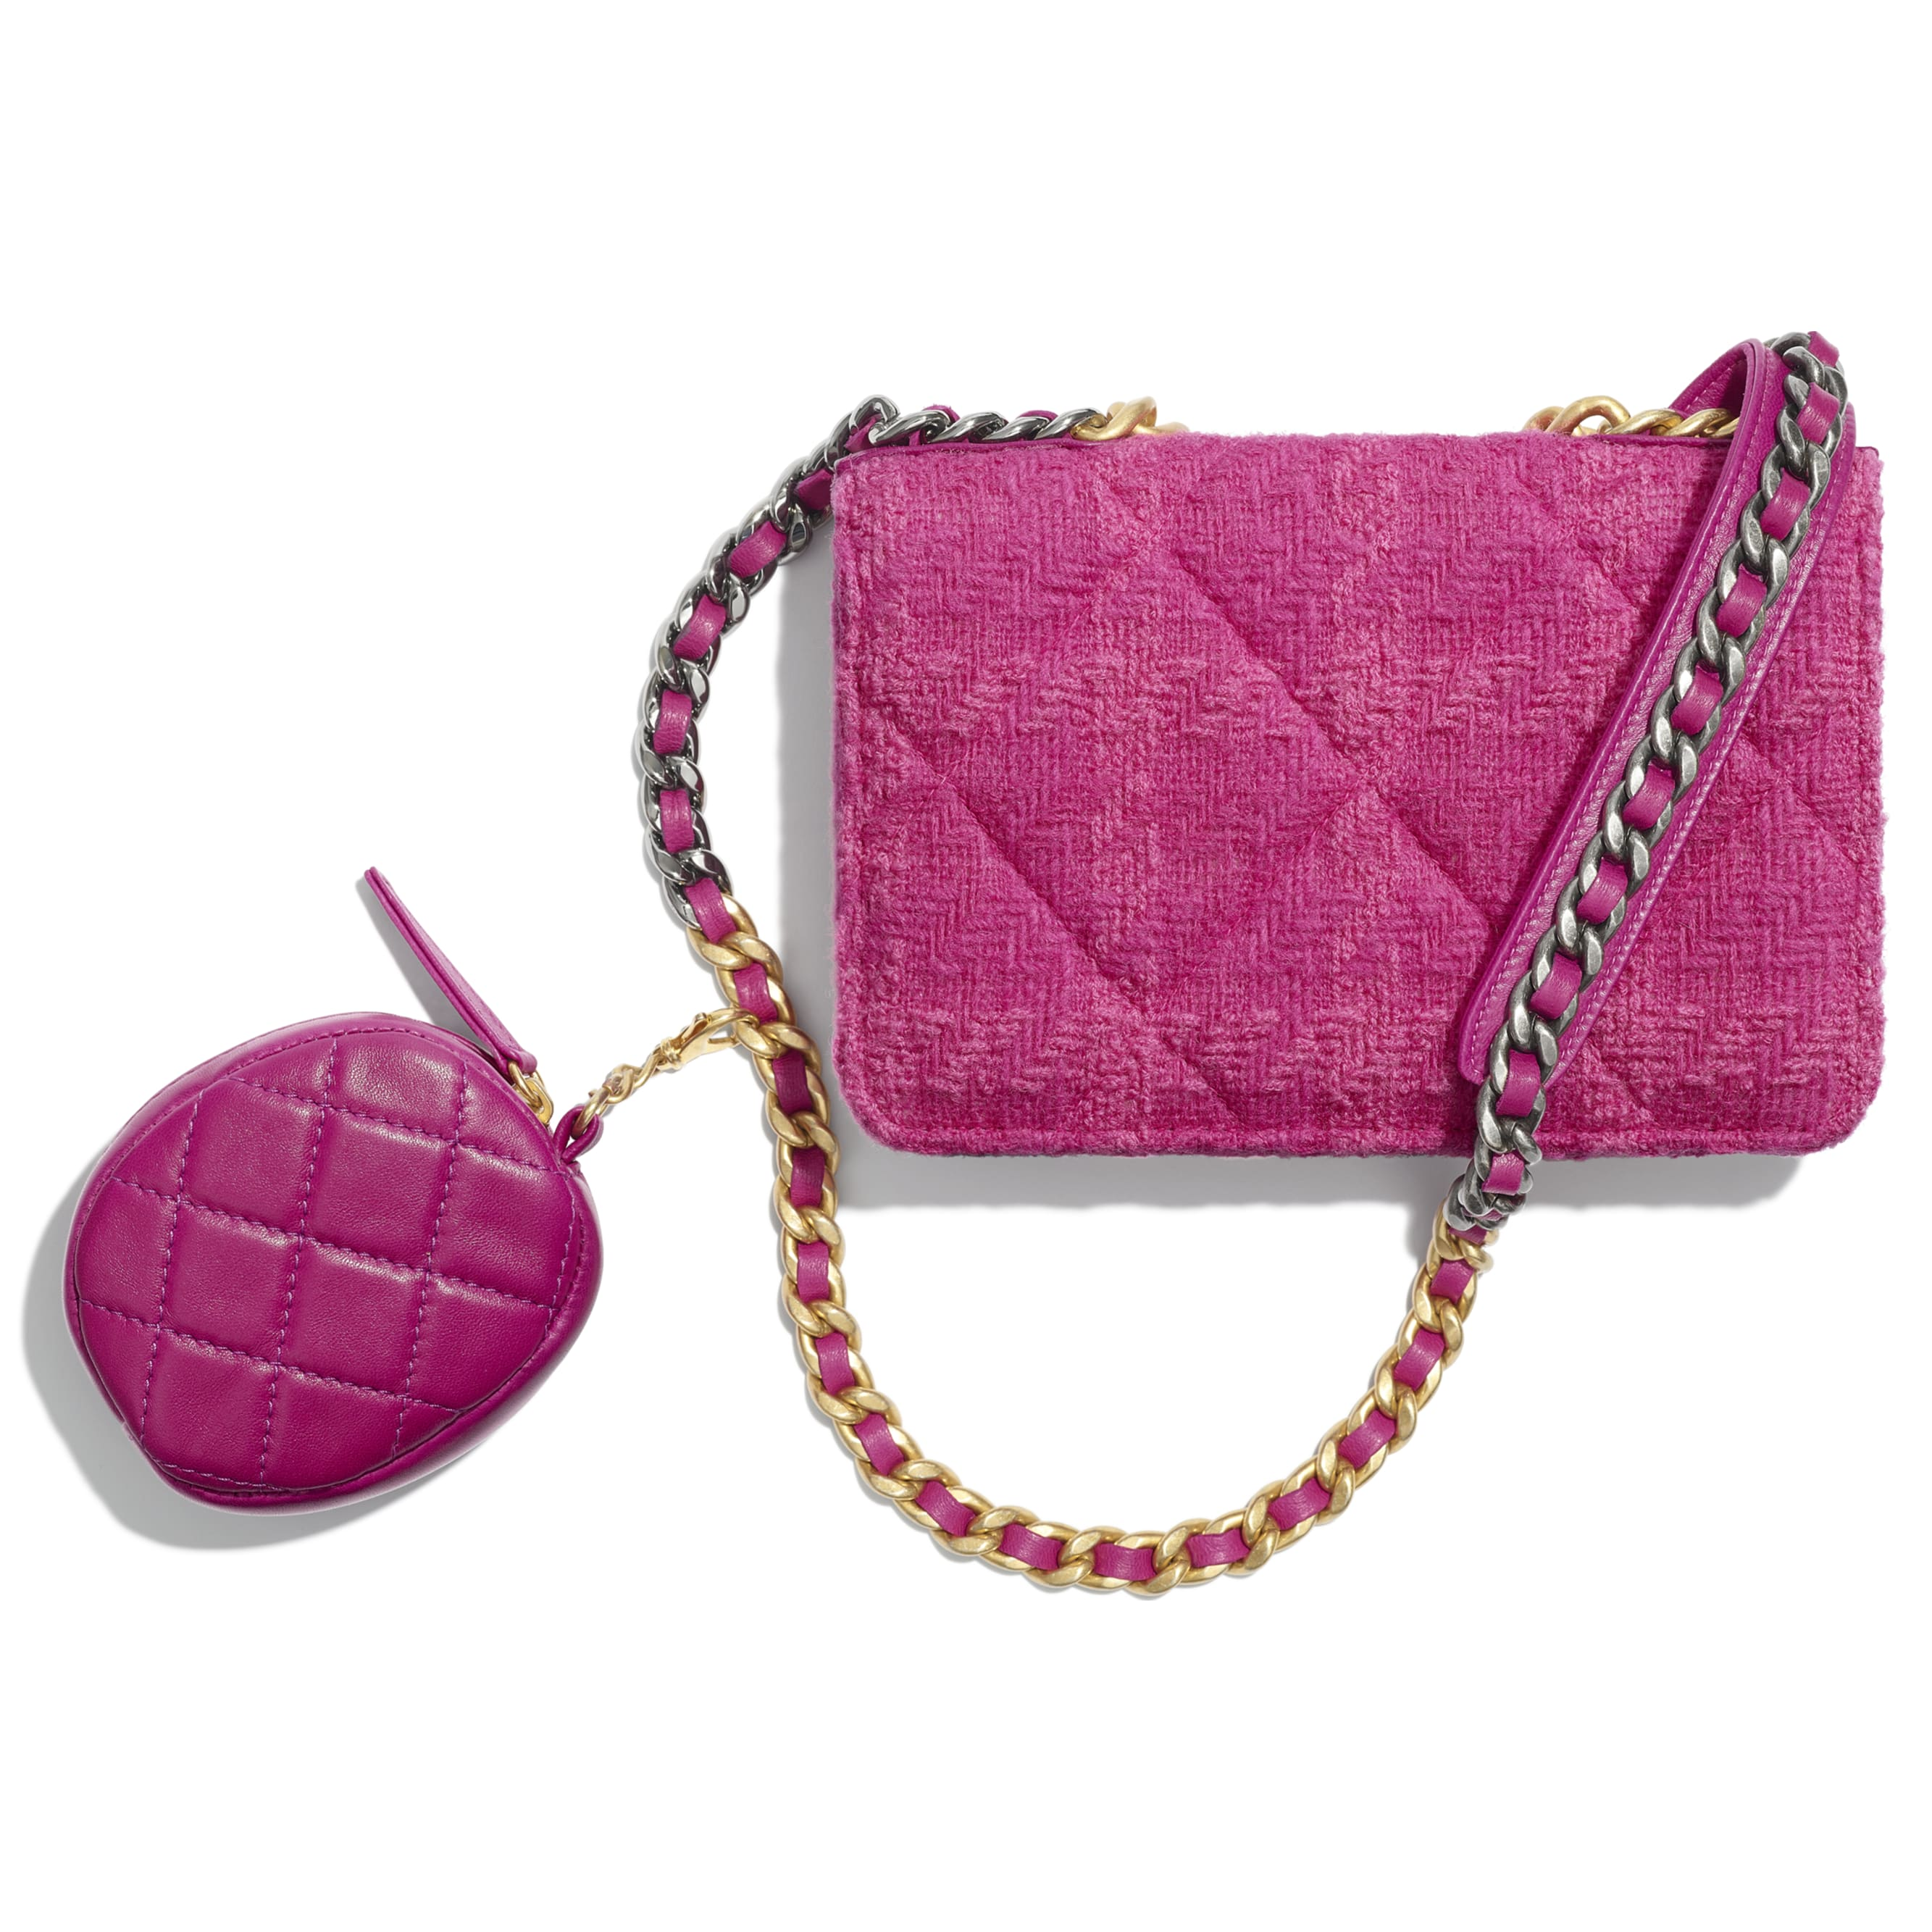 CHANEL 19 Wallet on Chain & Coin Purse - Fuchsia - Wool Tweed, Lambskin, Gold-Tone, Silver-Tone & Ruthenium-Finish Metal - Alternative view - see standard sized version